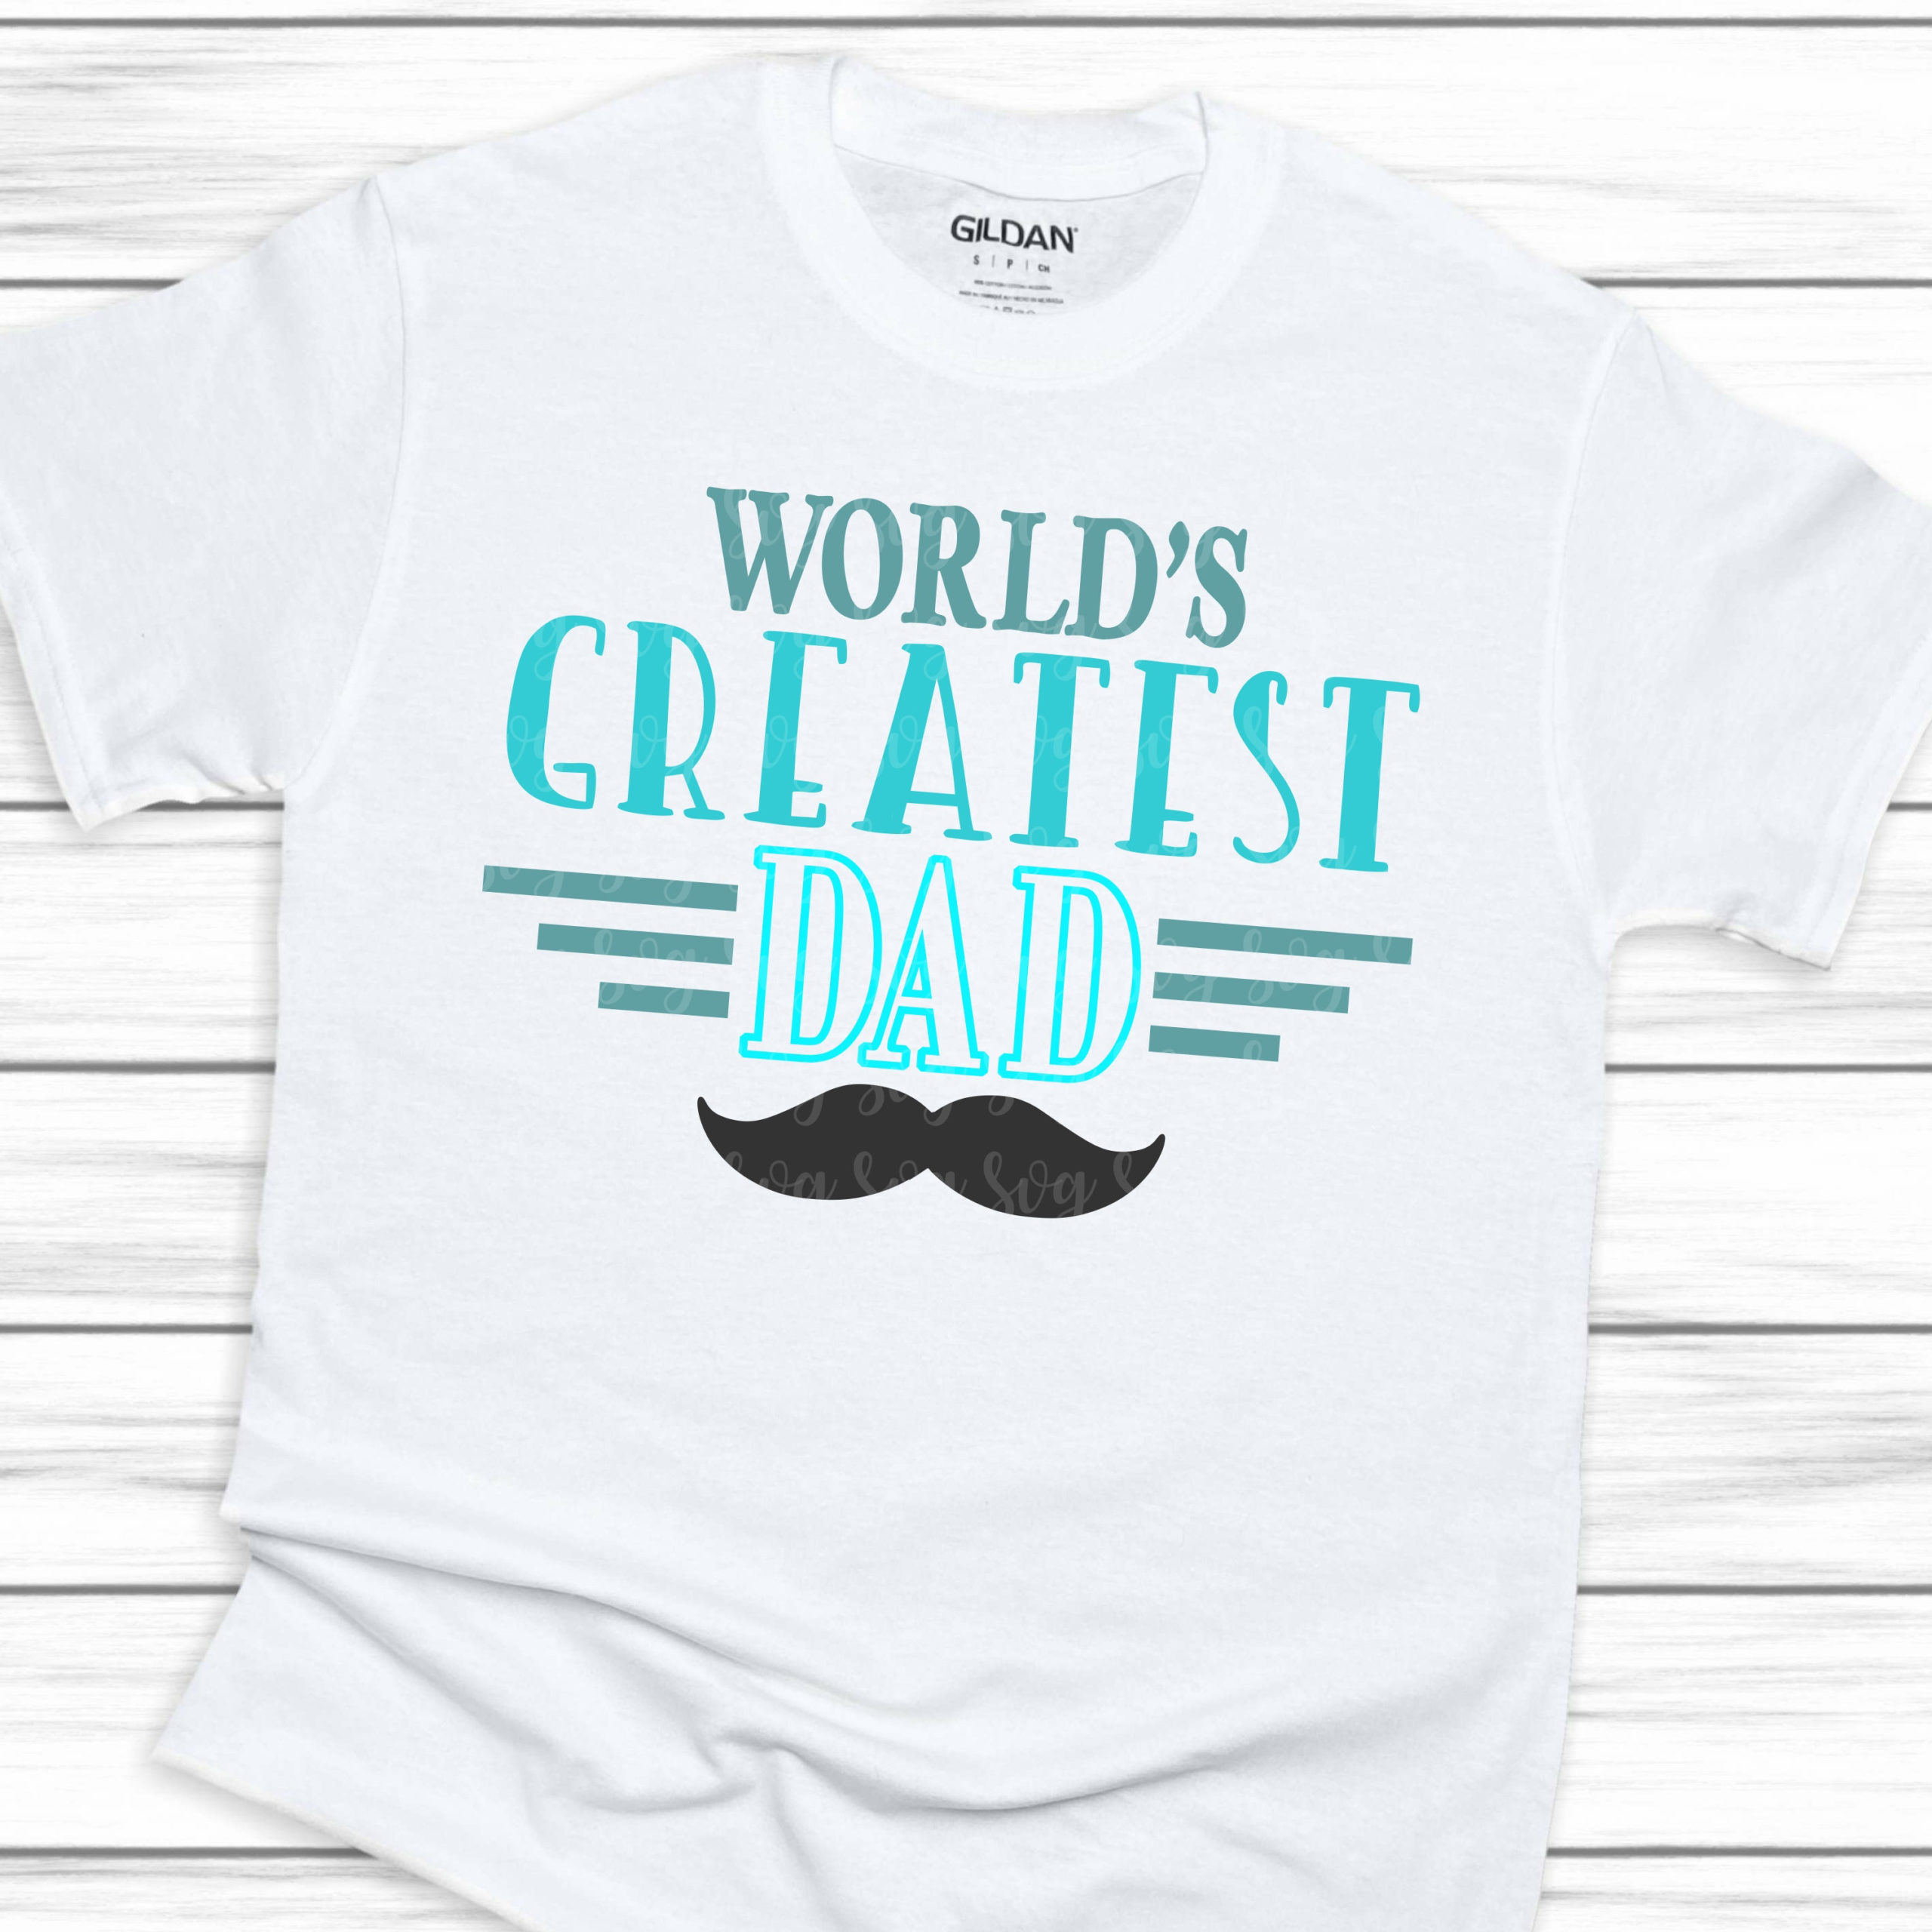 Fathers-day-svg-worlds-greatest-dad-svgboys-fathers-day-svg-funny-dad-joke-pop-pop-svg-fathers-day-svg-designfathers-day-cut-file-60512c54